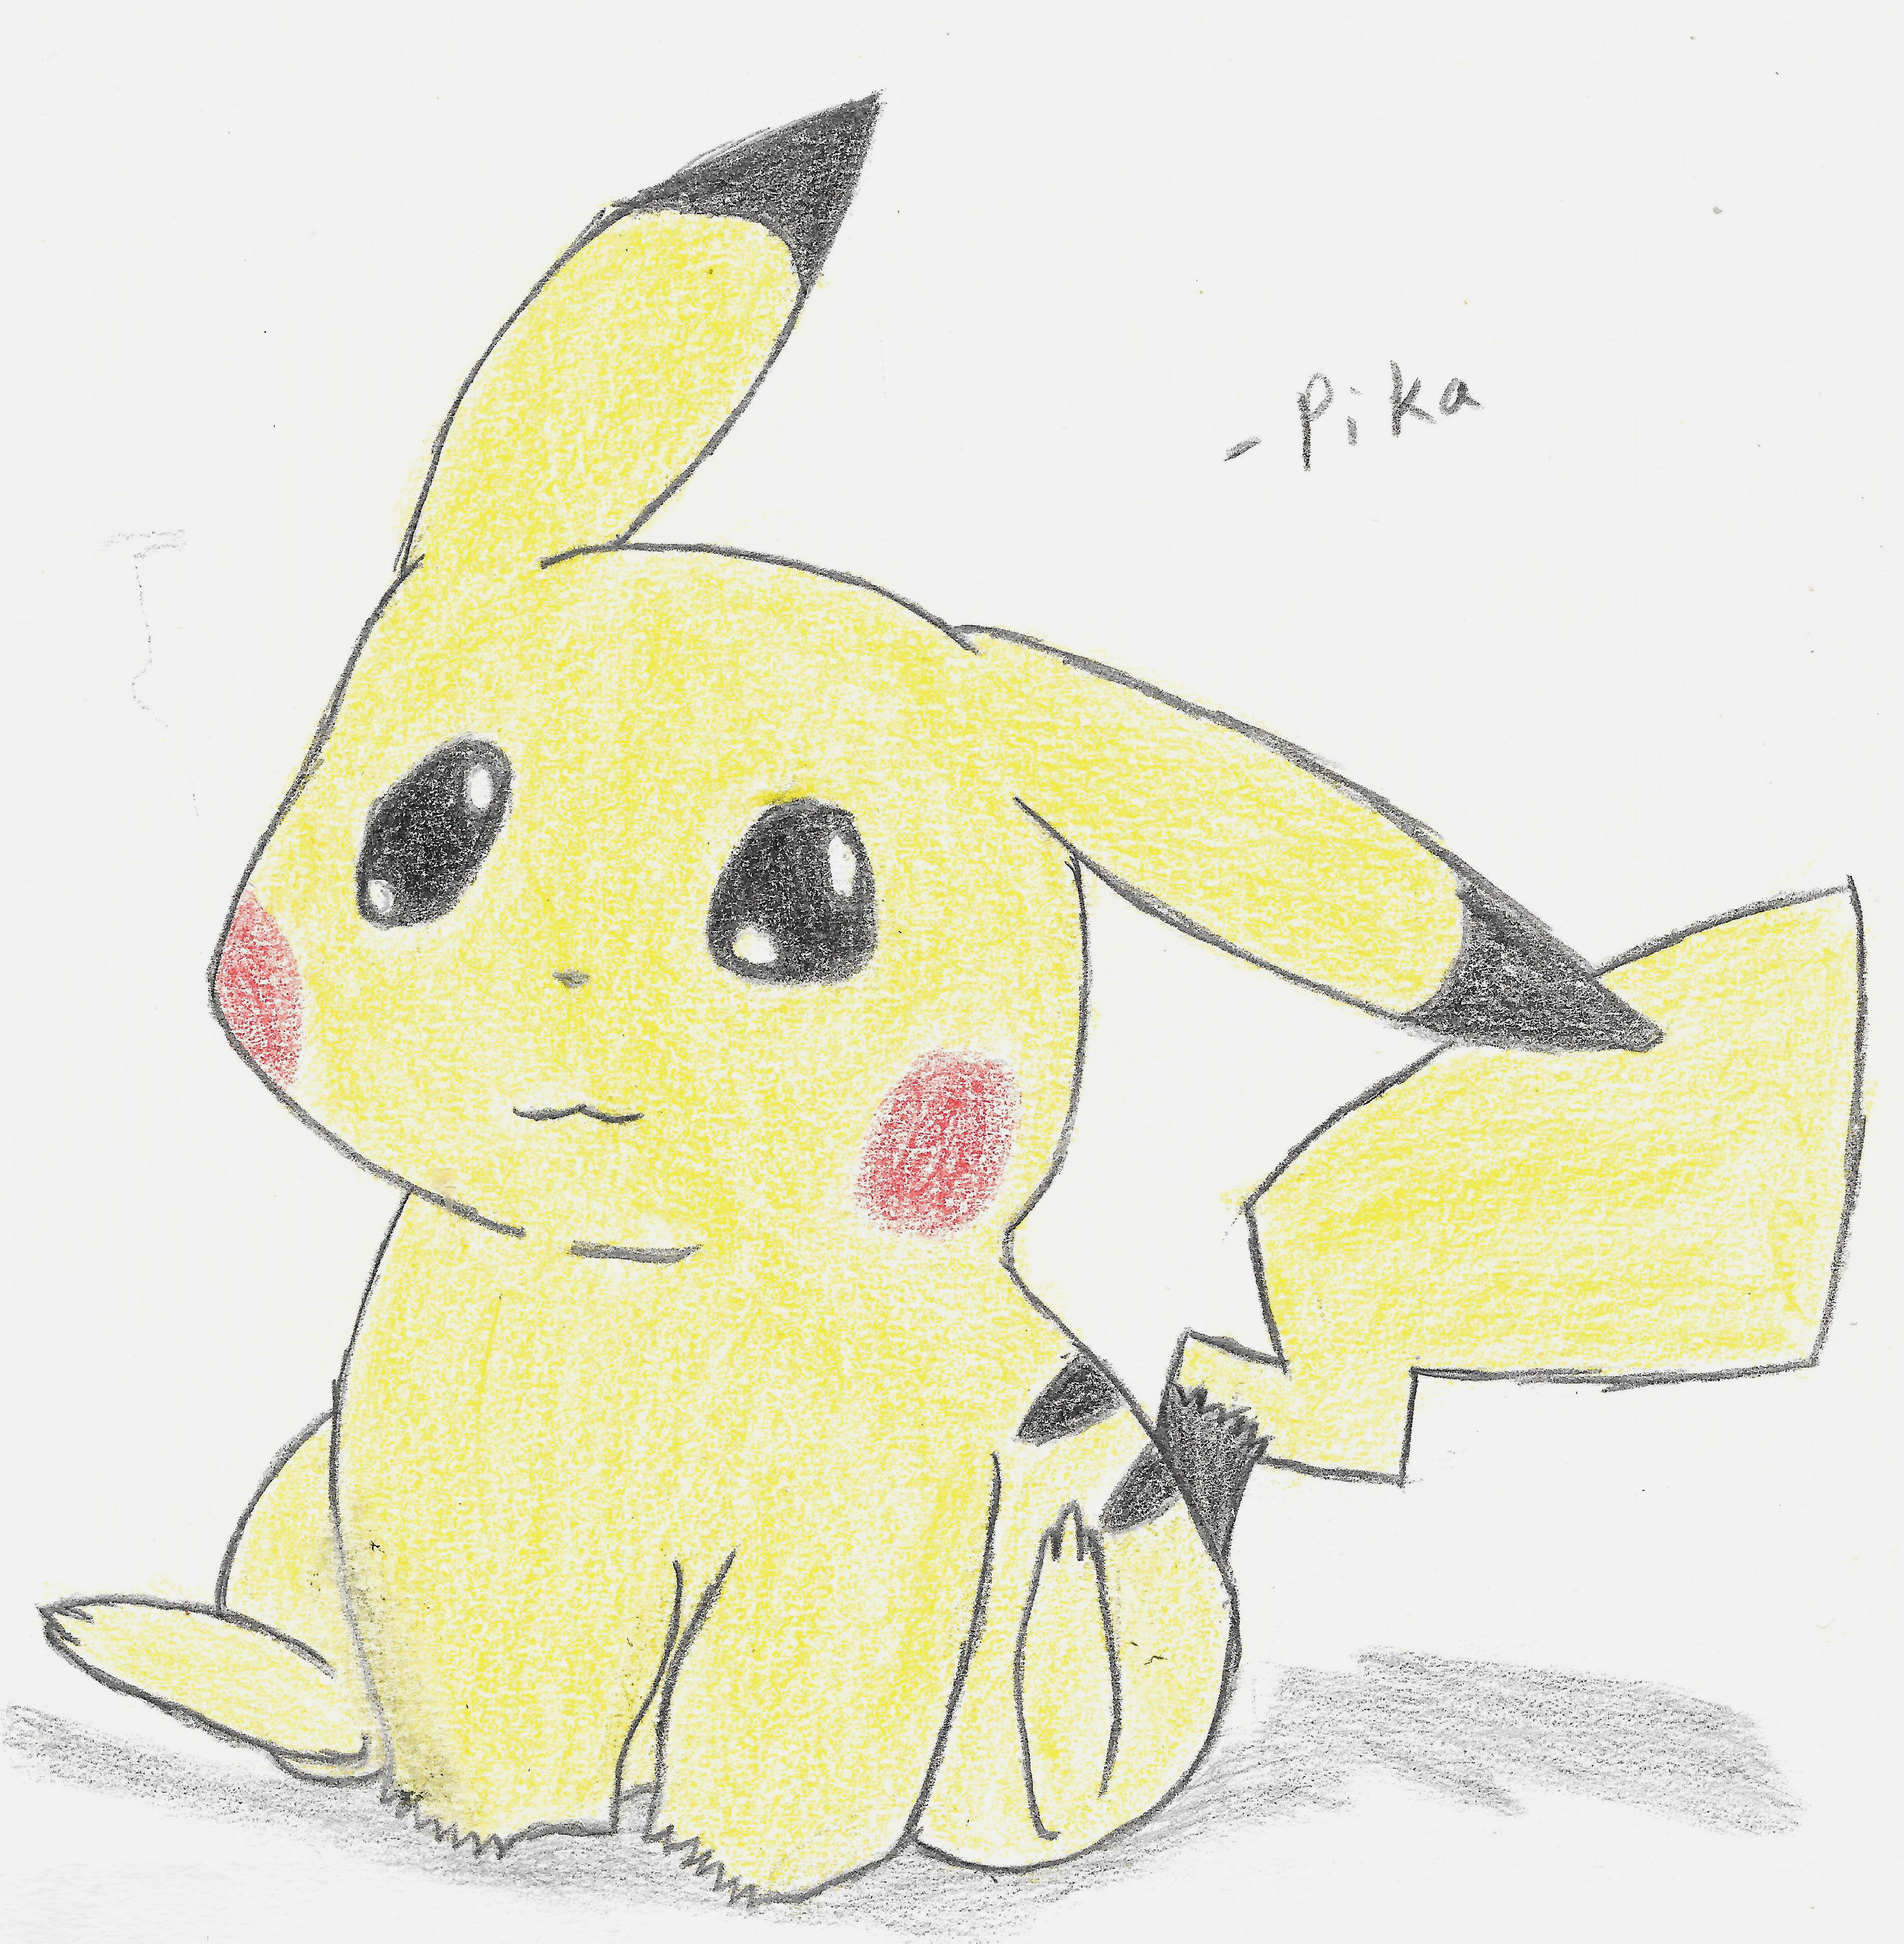 Color Pencil Pikachu by jj060499 on DeviantArt